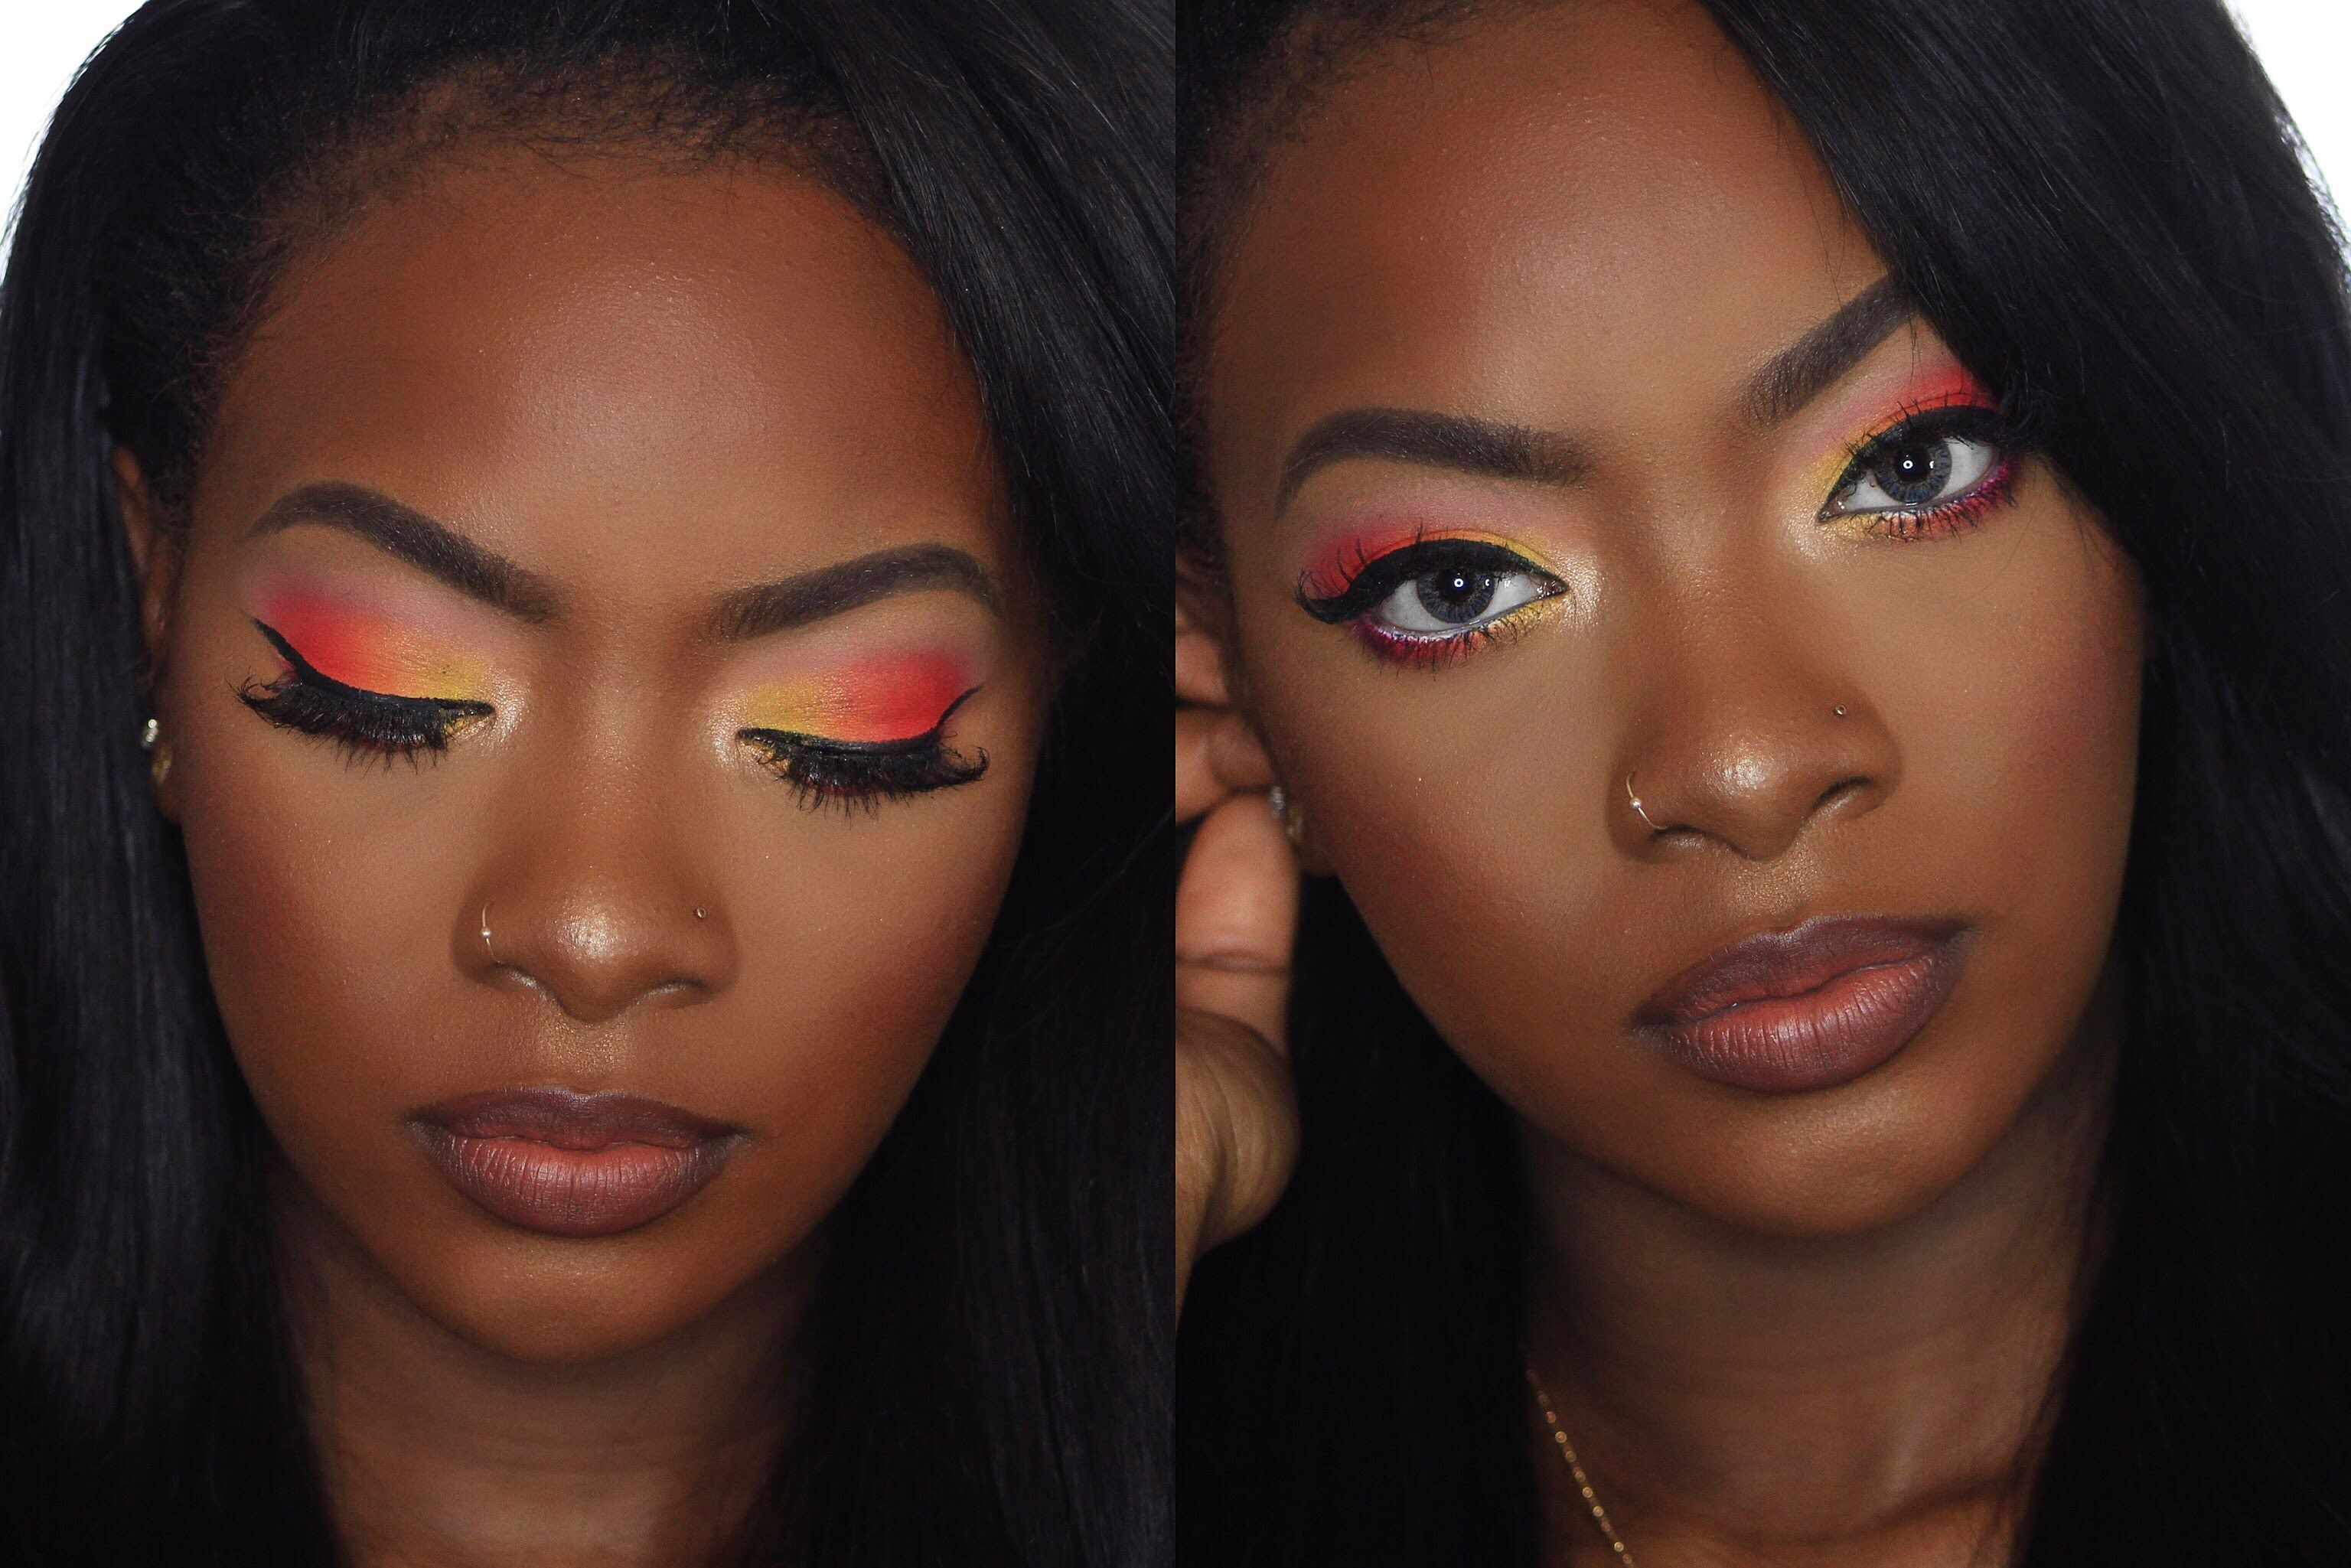 Sunset eyeshadow (warm hues in gradient shades) is the new smoky eye, and perfect for warm weather. Searches for sunset eyeshadow +285% YoY.